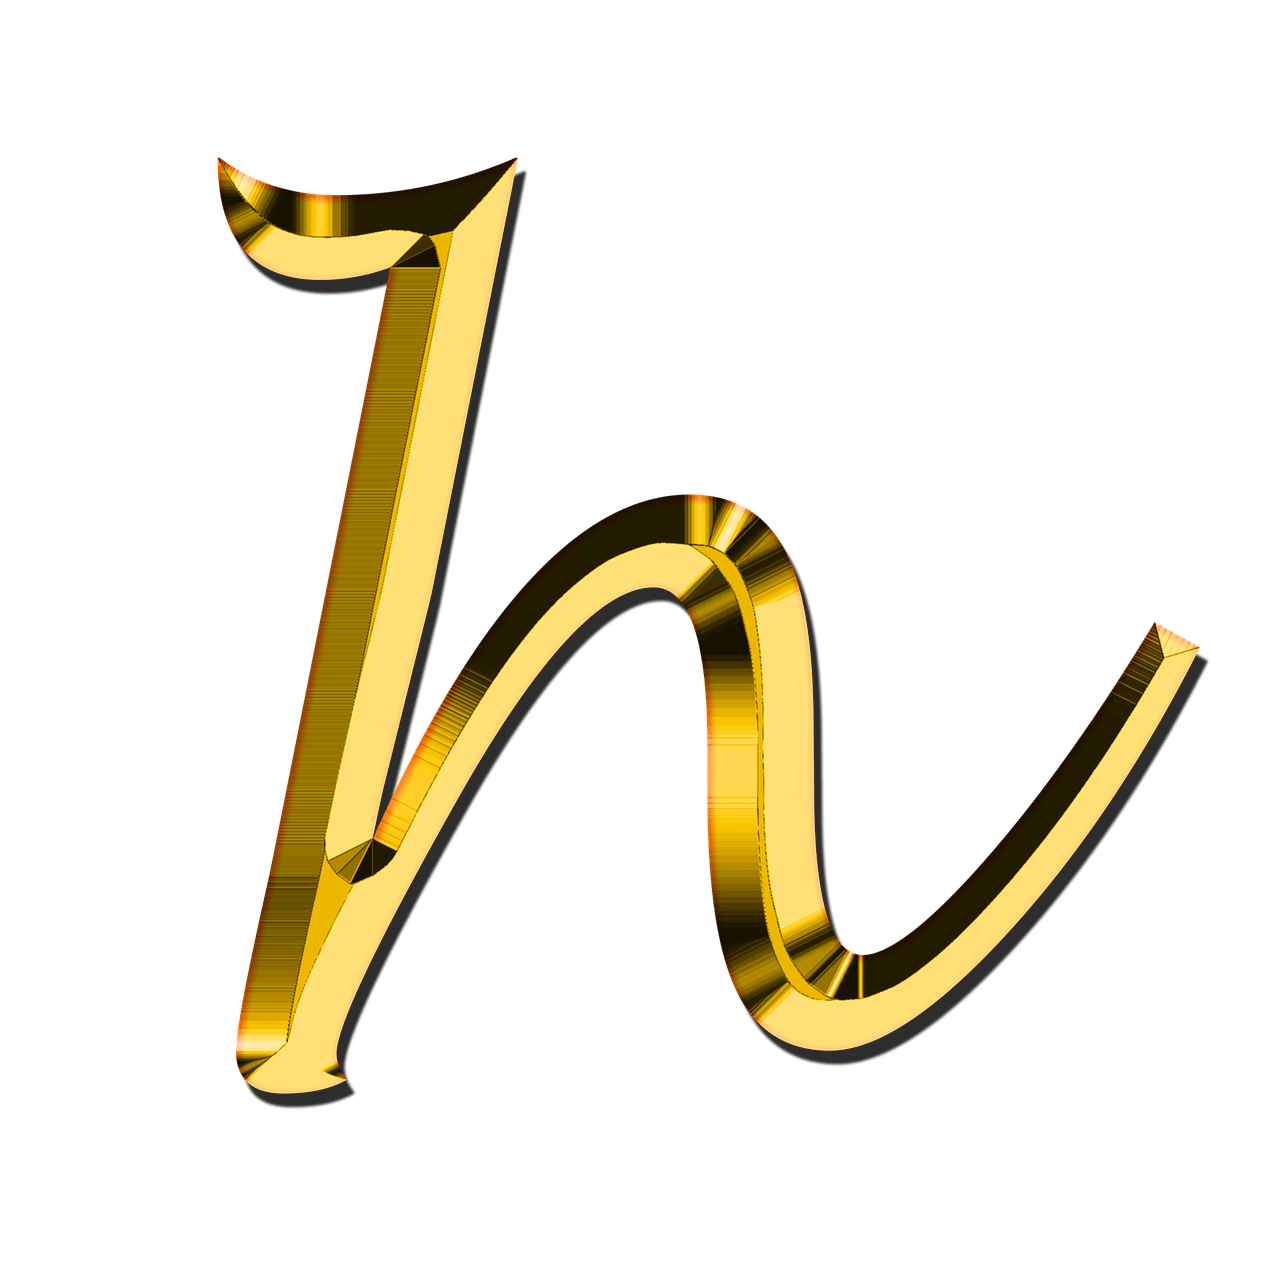 Png h download. Small letter transparent stickpng